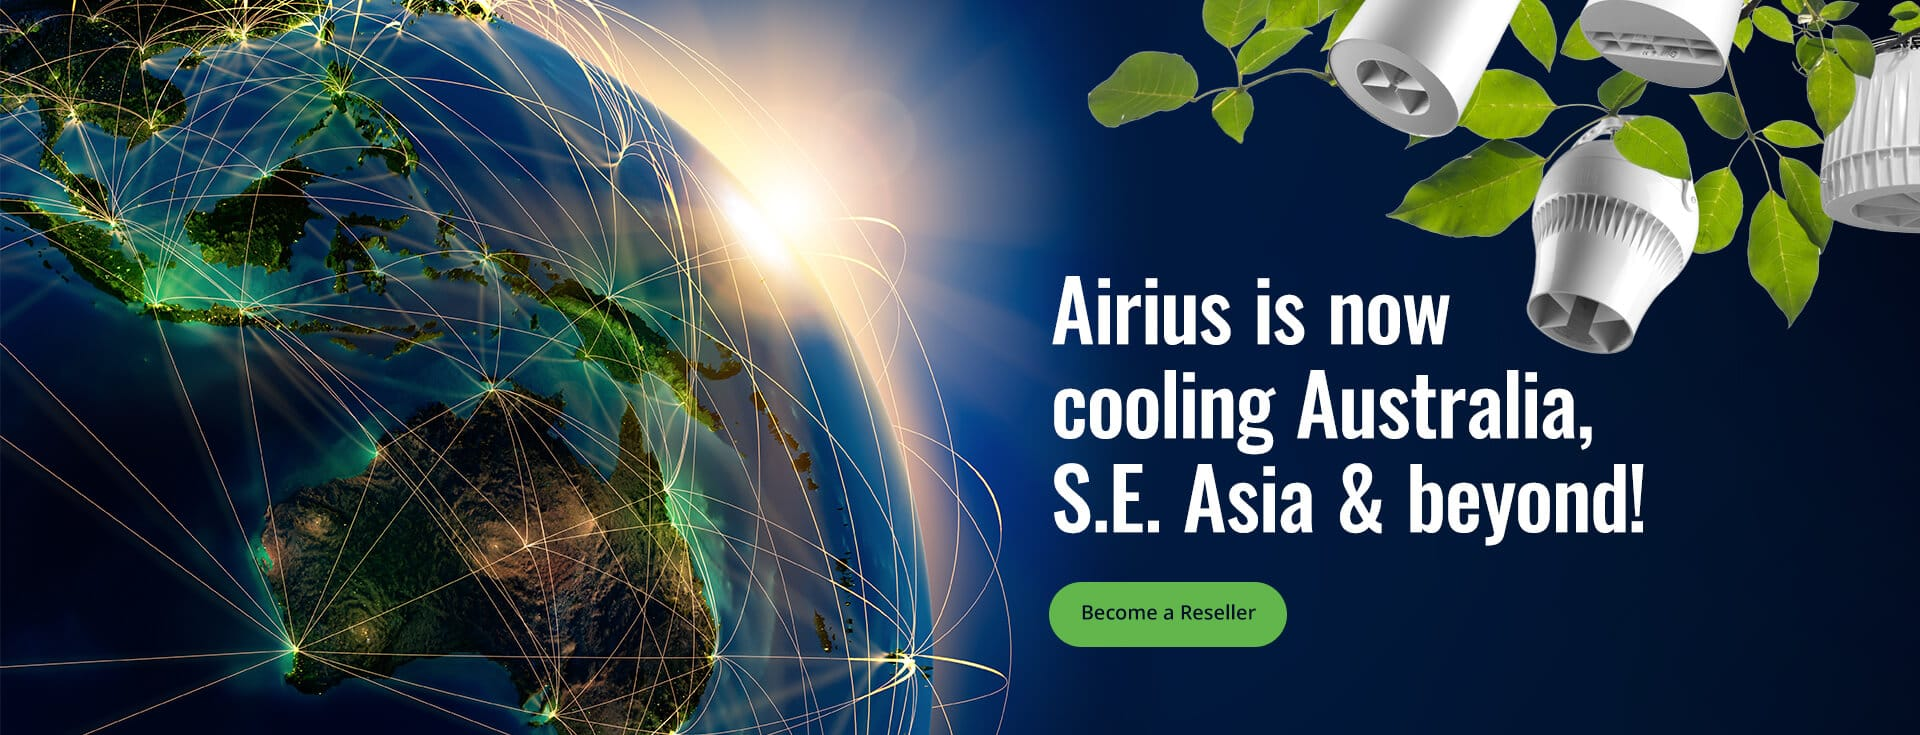 Airius is now cooling Australia, S.E. Asia and beyond!